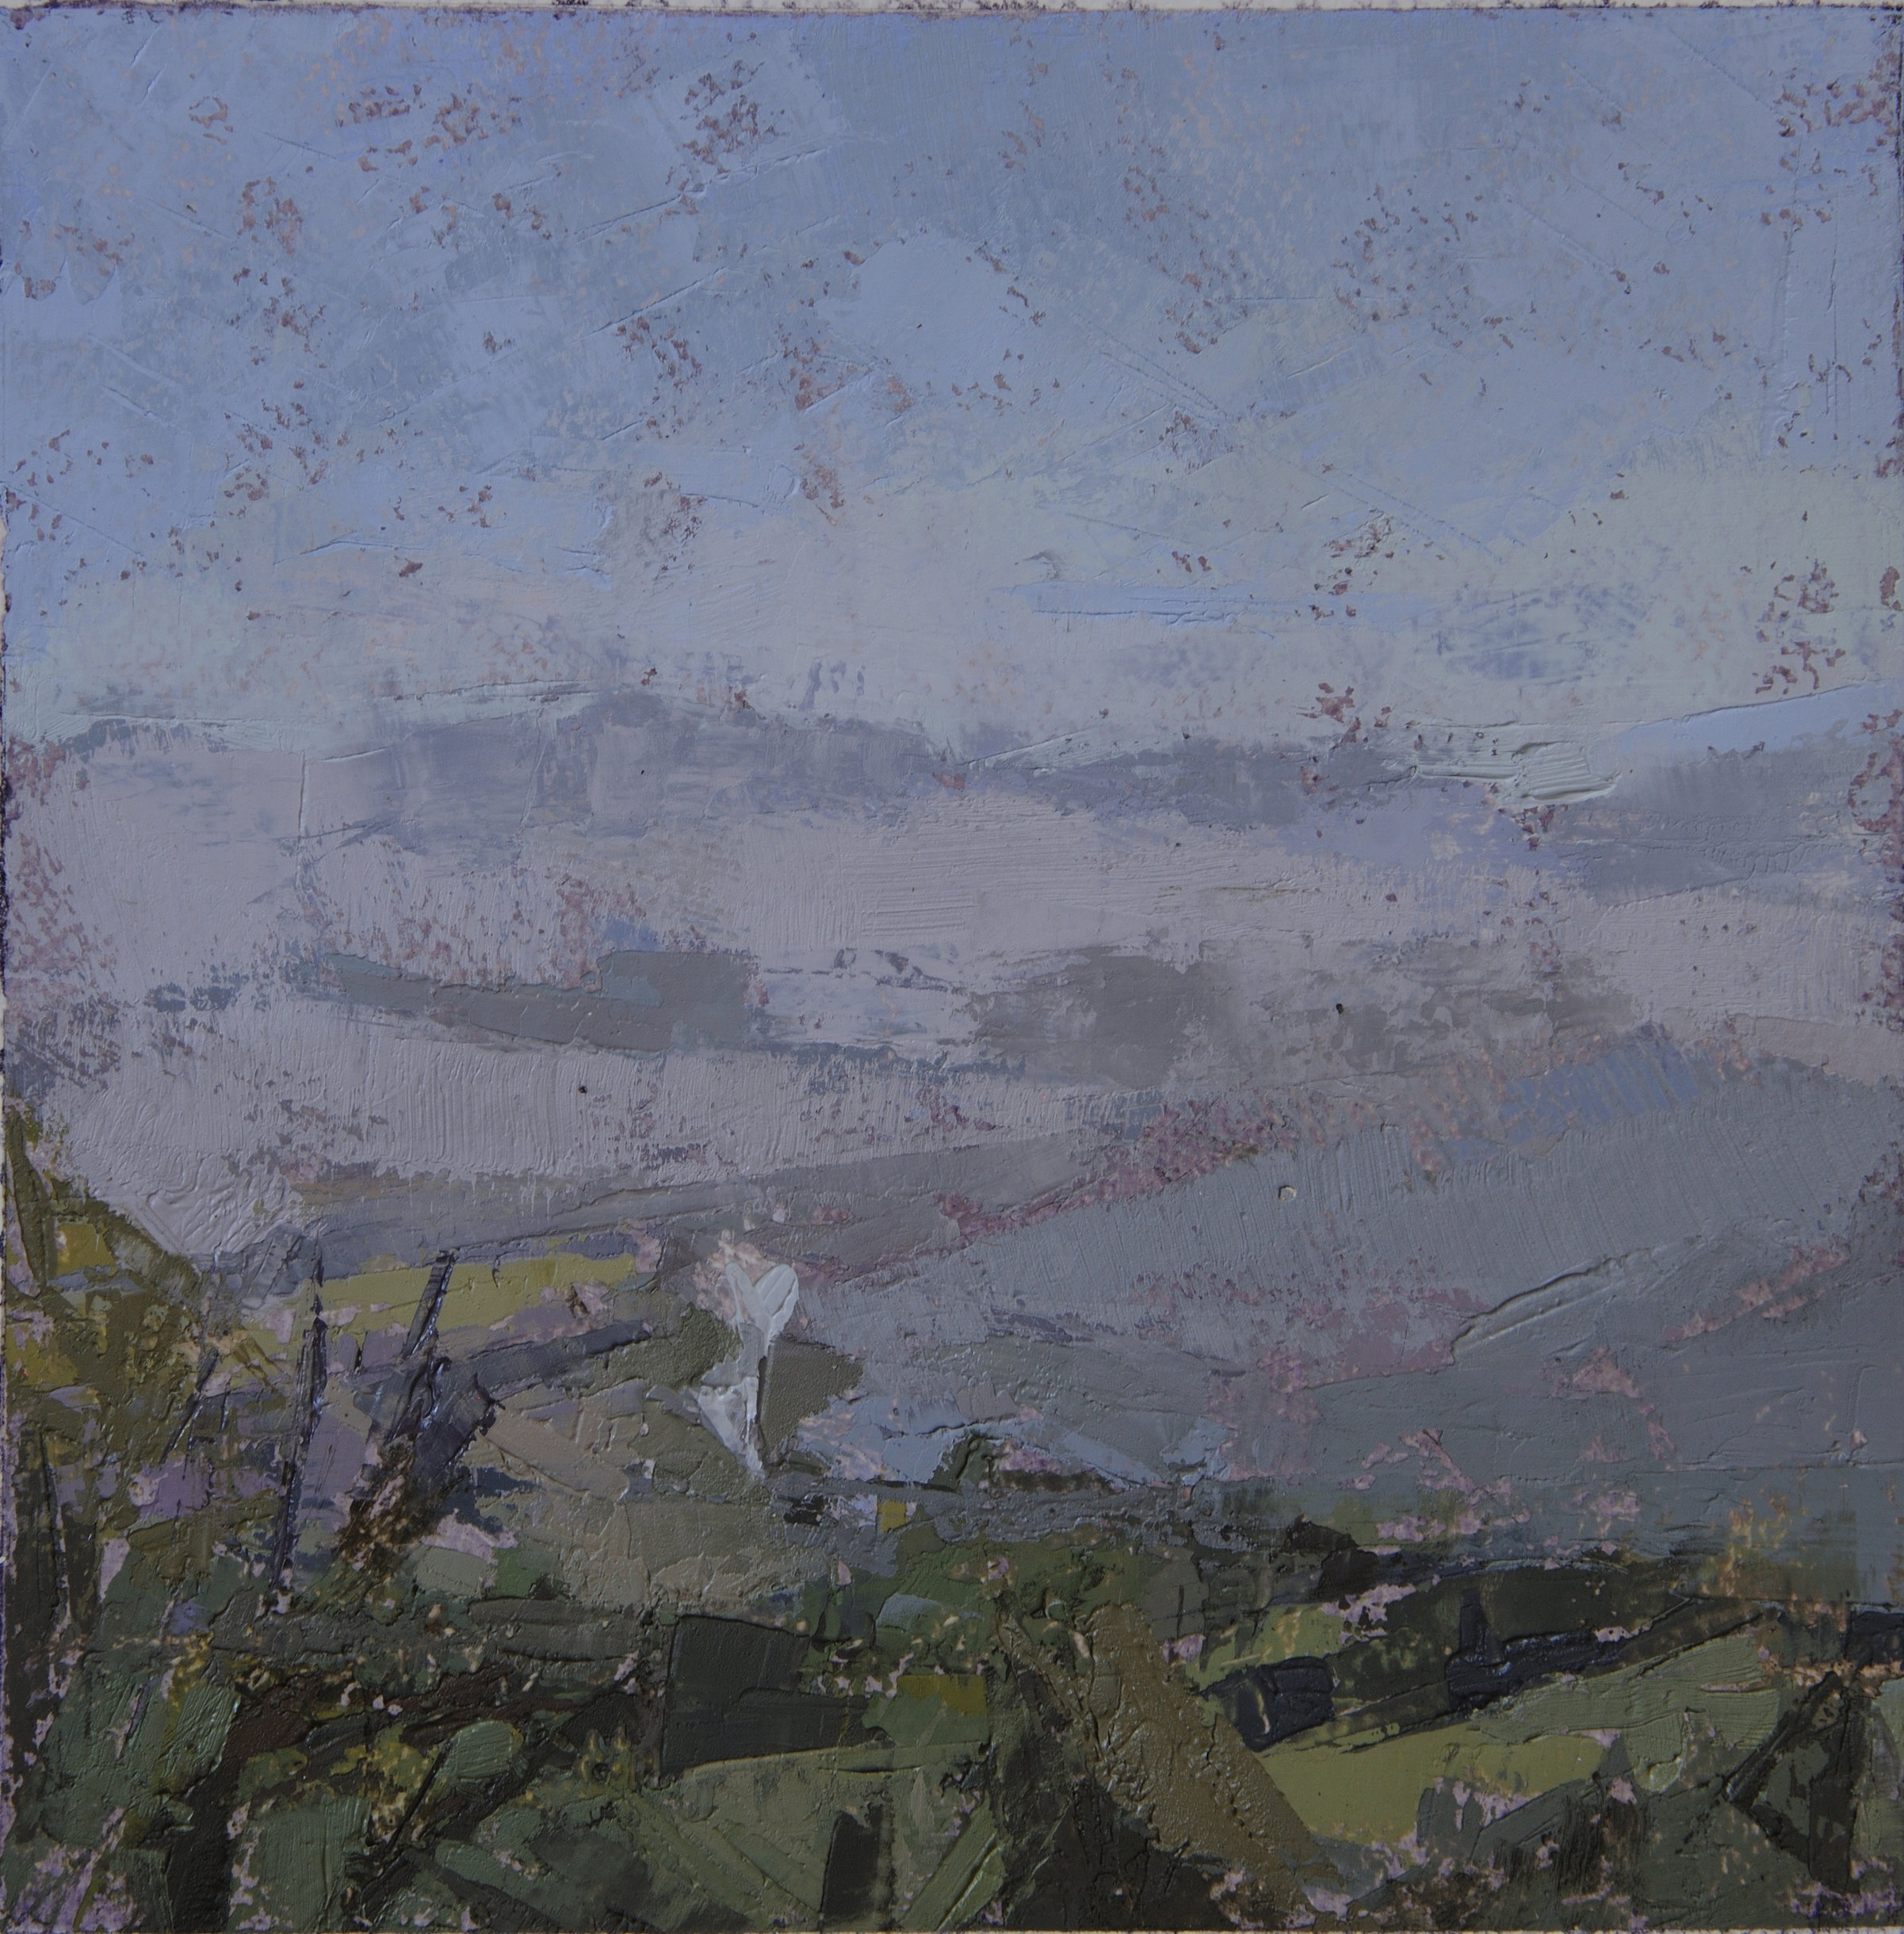 Umbrian Landscape: Gray Day